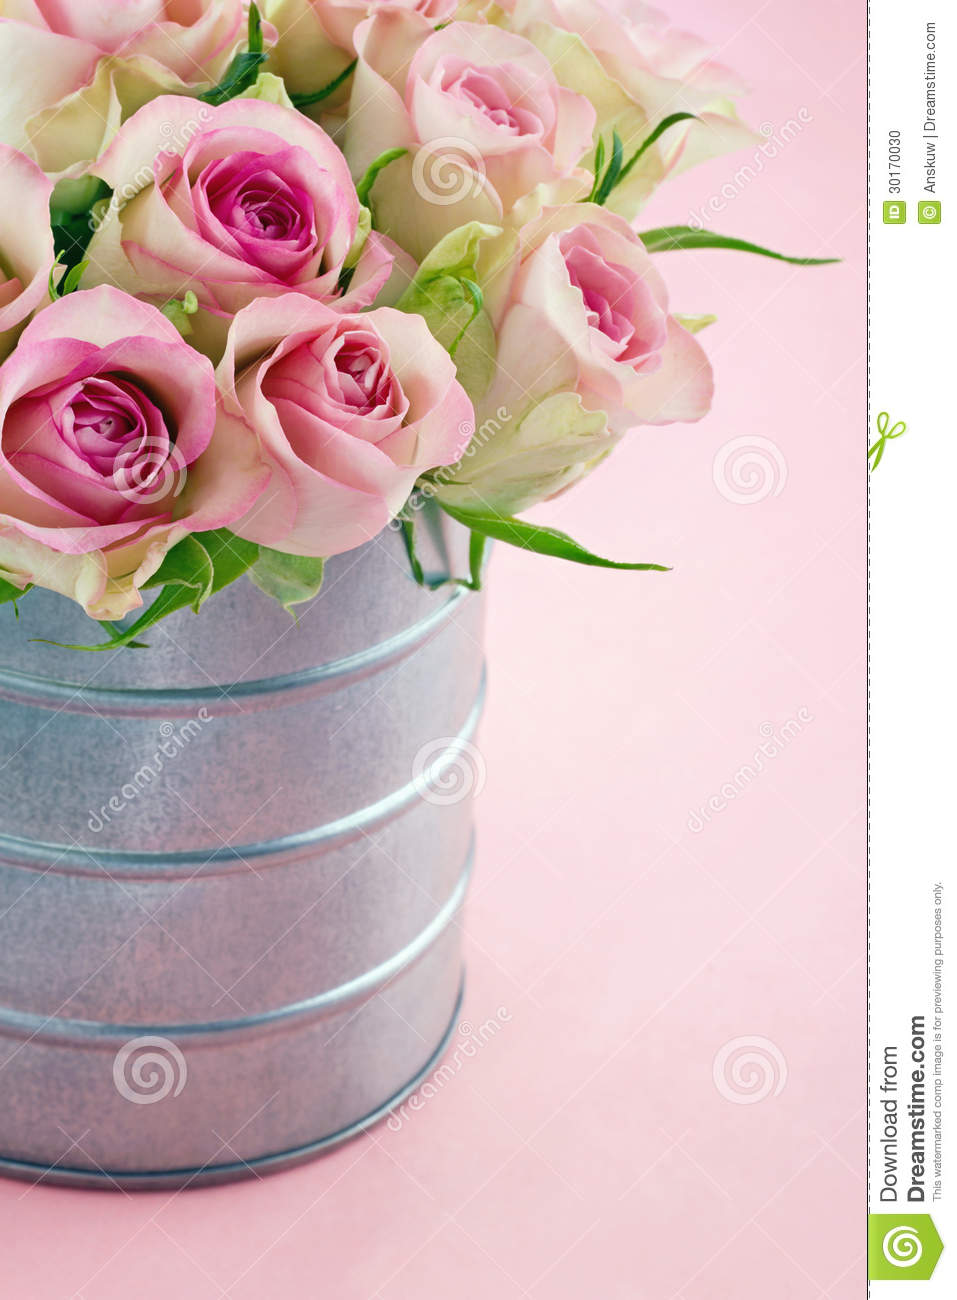 pink romantic roses on pastel color background stock photo image 30170030. Black Bedroom Furniture Sets. Home Design Ideas